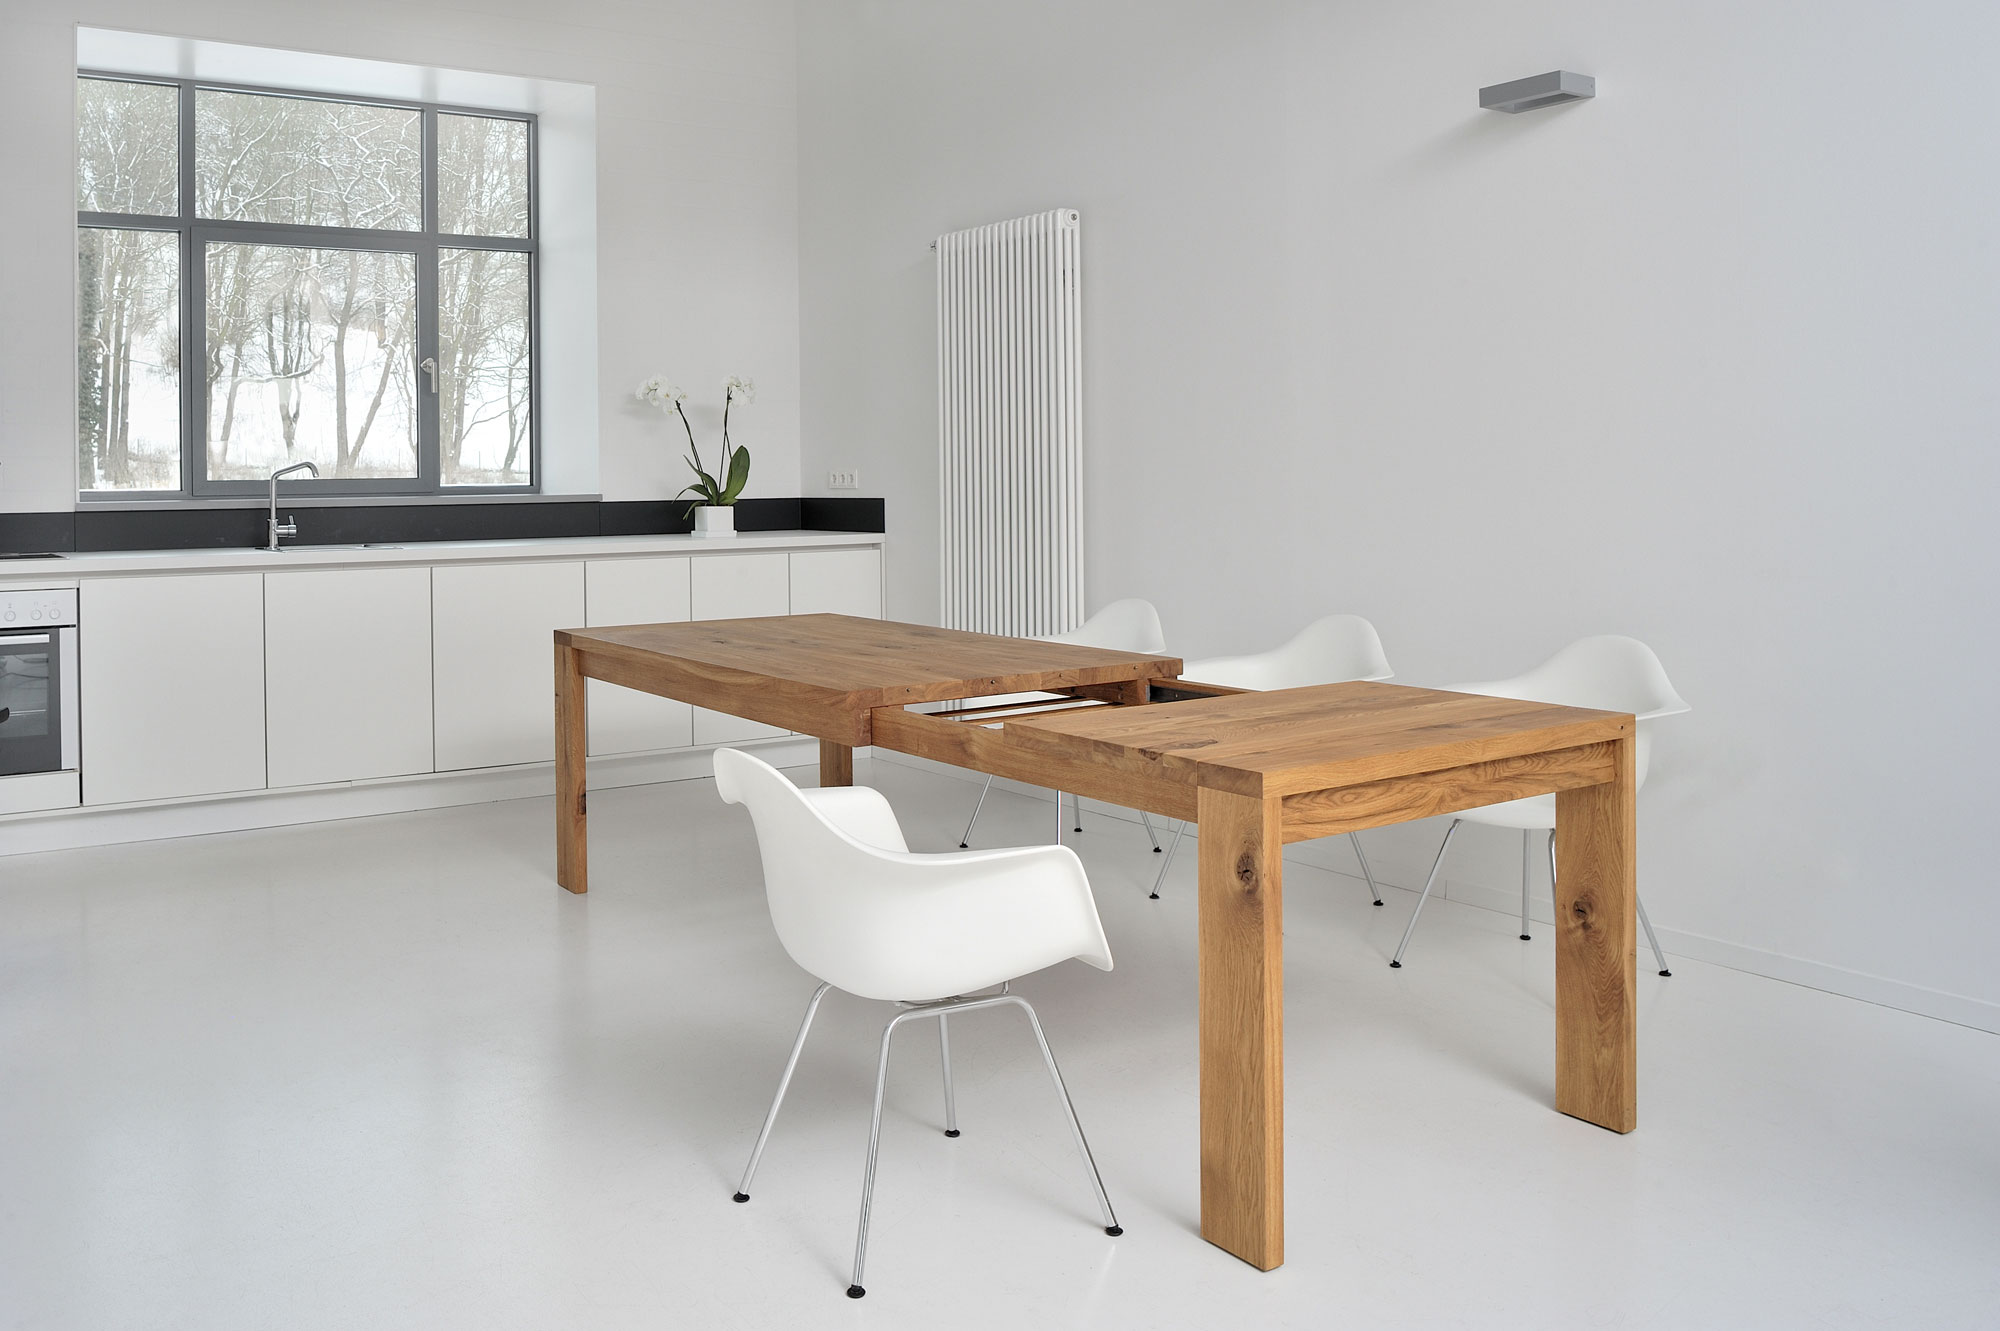 Extendable Table LUNGO 2762 custom made in solid wood by vitamin design